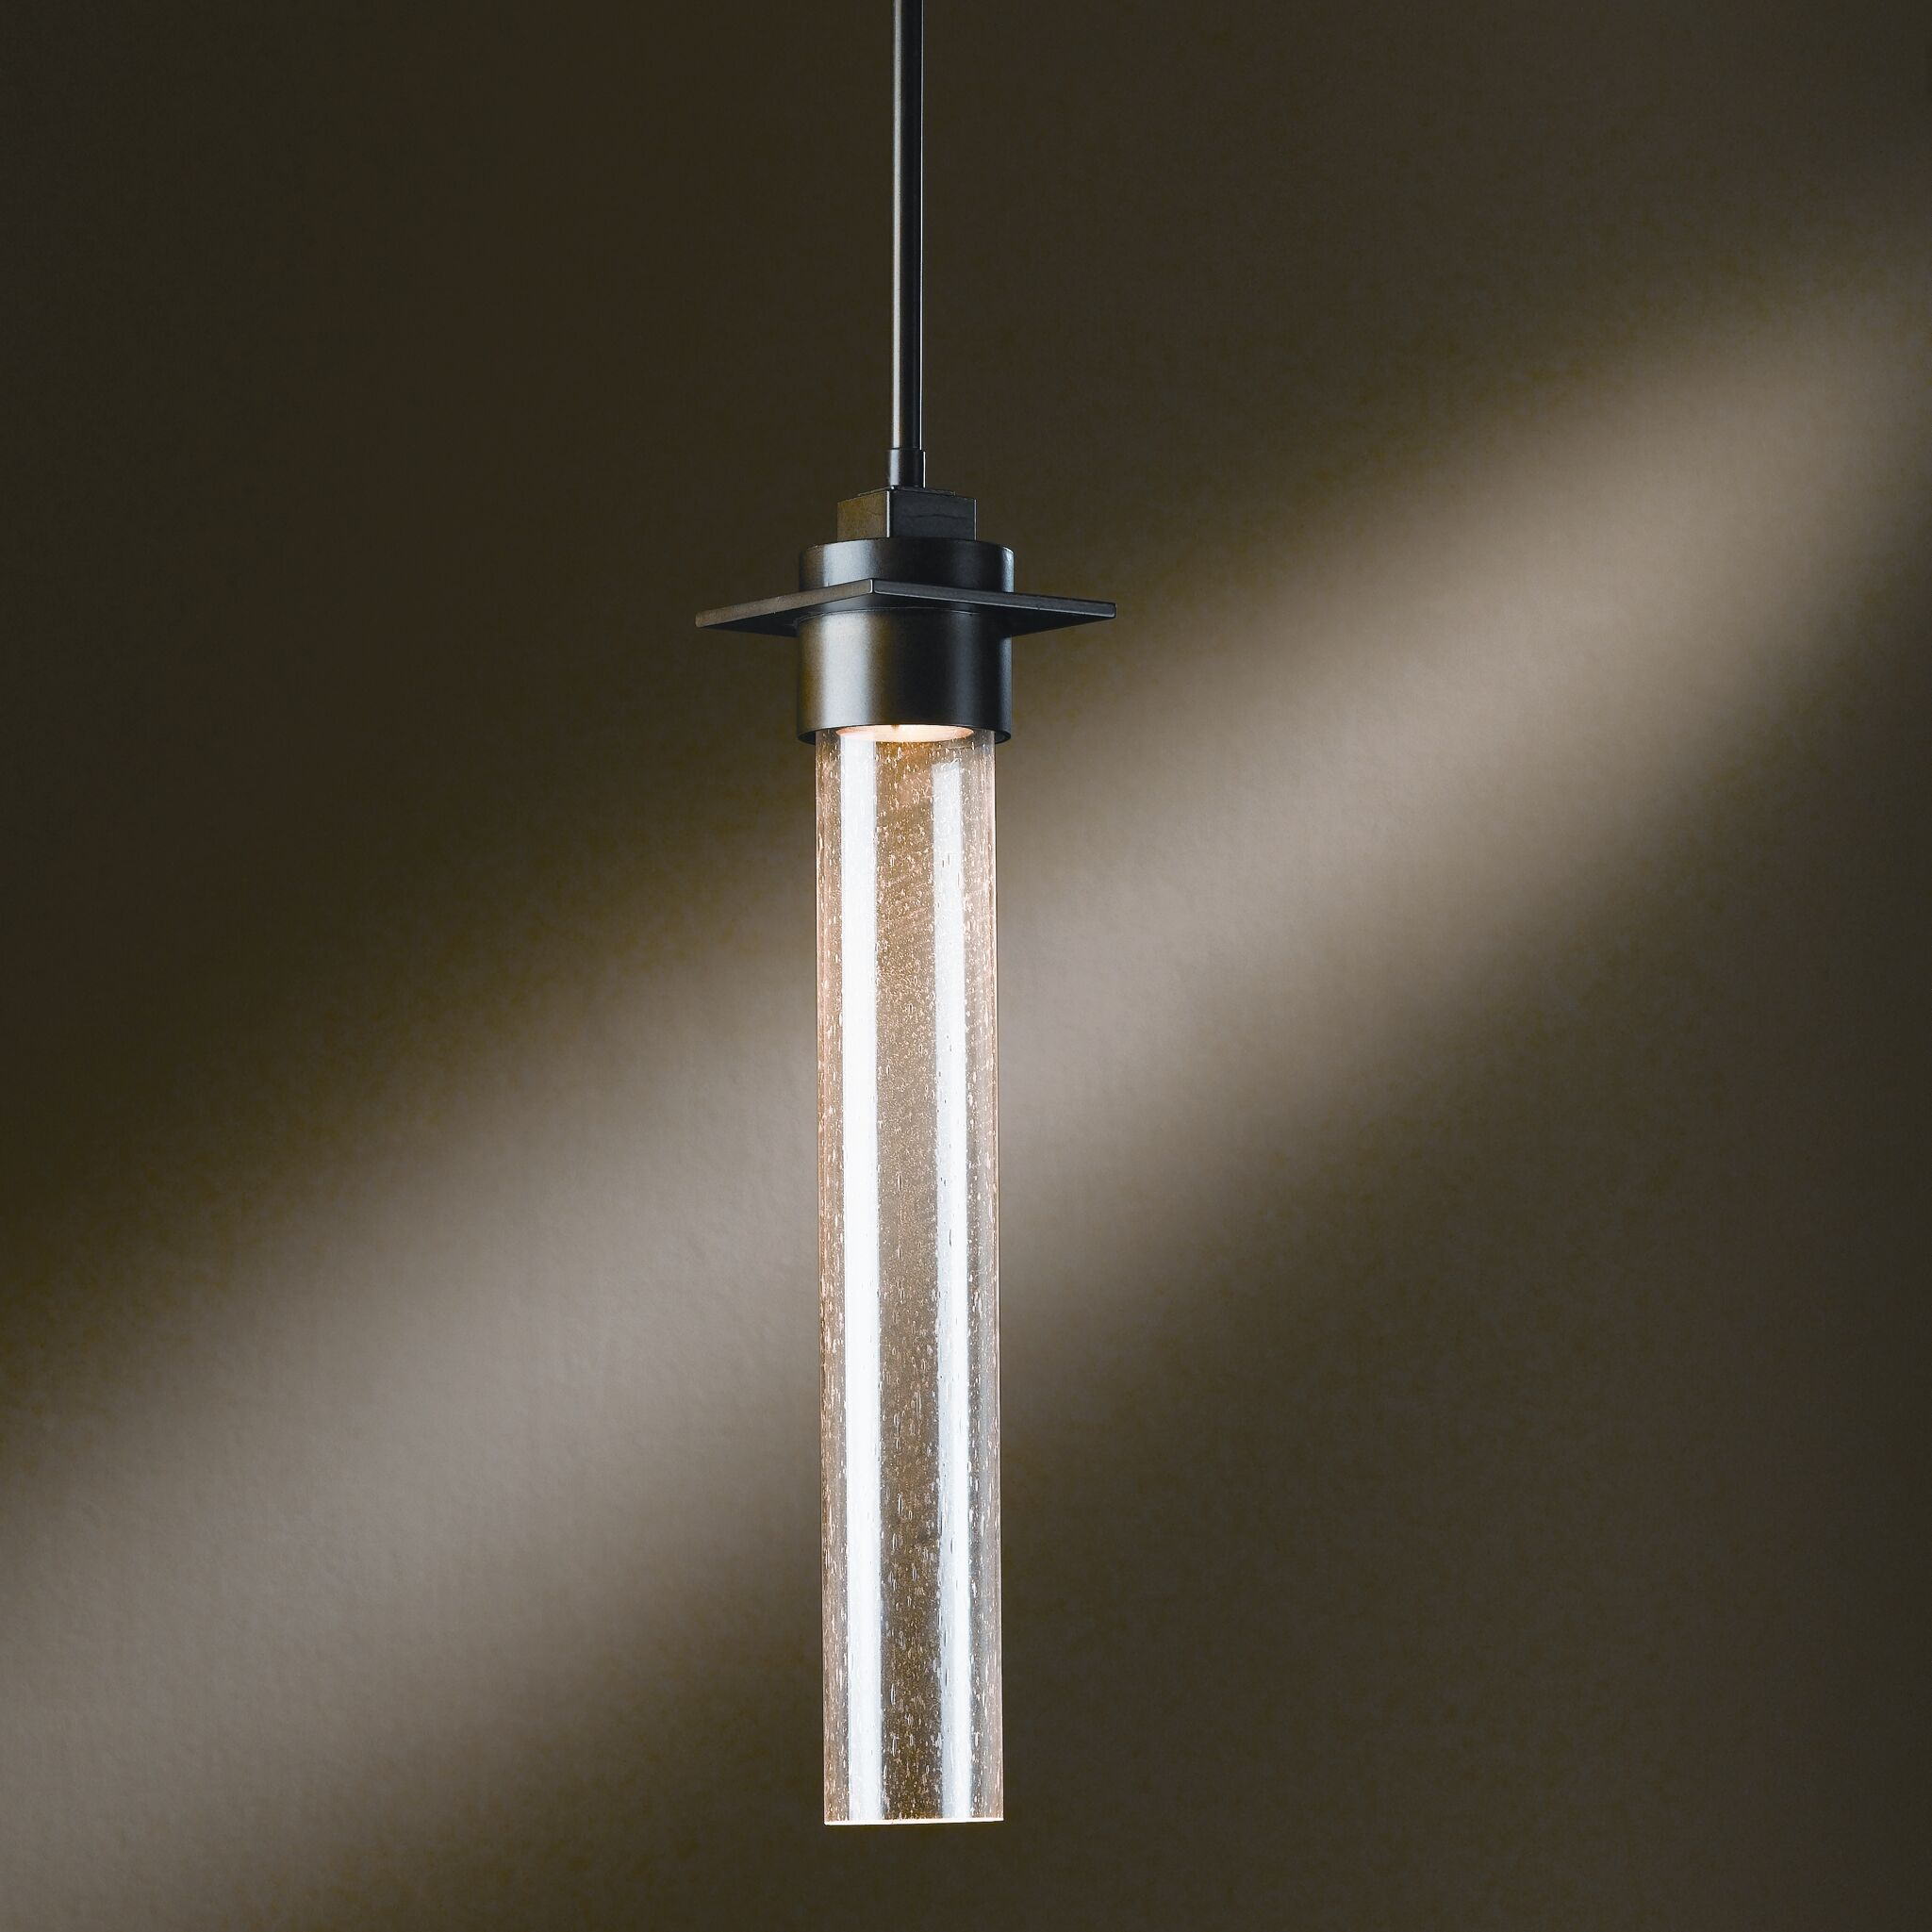 Airis 1-Light Cylinder Pendant Glass: Mess Tube Diffuser, Finish: Translucent Dark Smoke